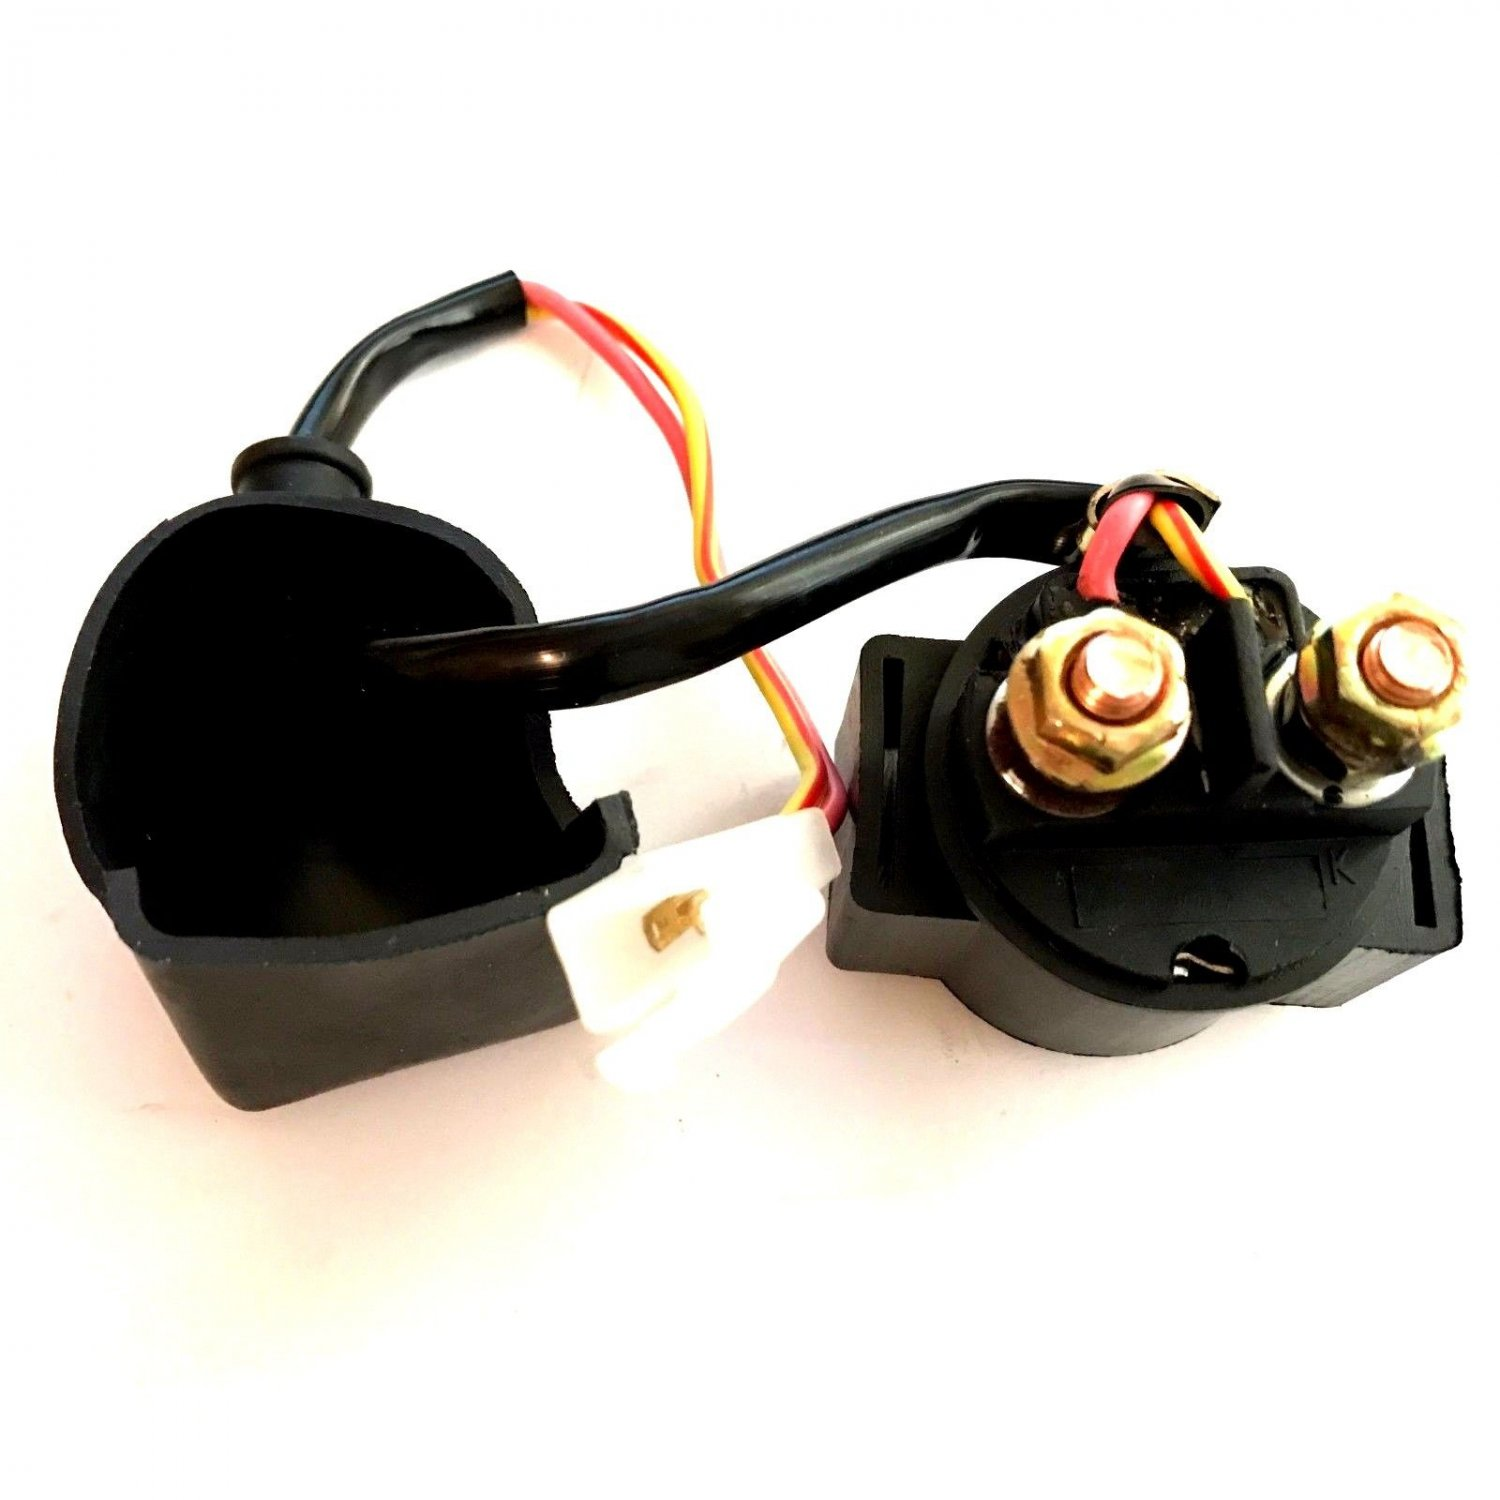 STARTER RELAY SOLENOID CARTER TALON 150 150CC GO KART CARTER BROTHERS BUGGY NEW